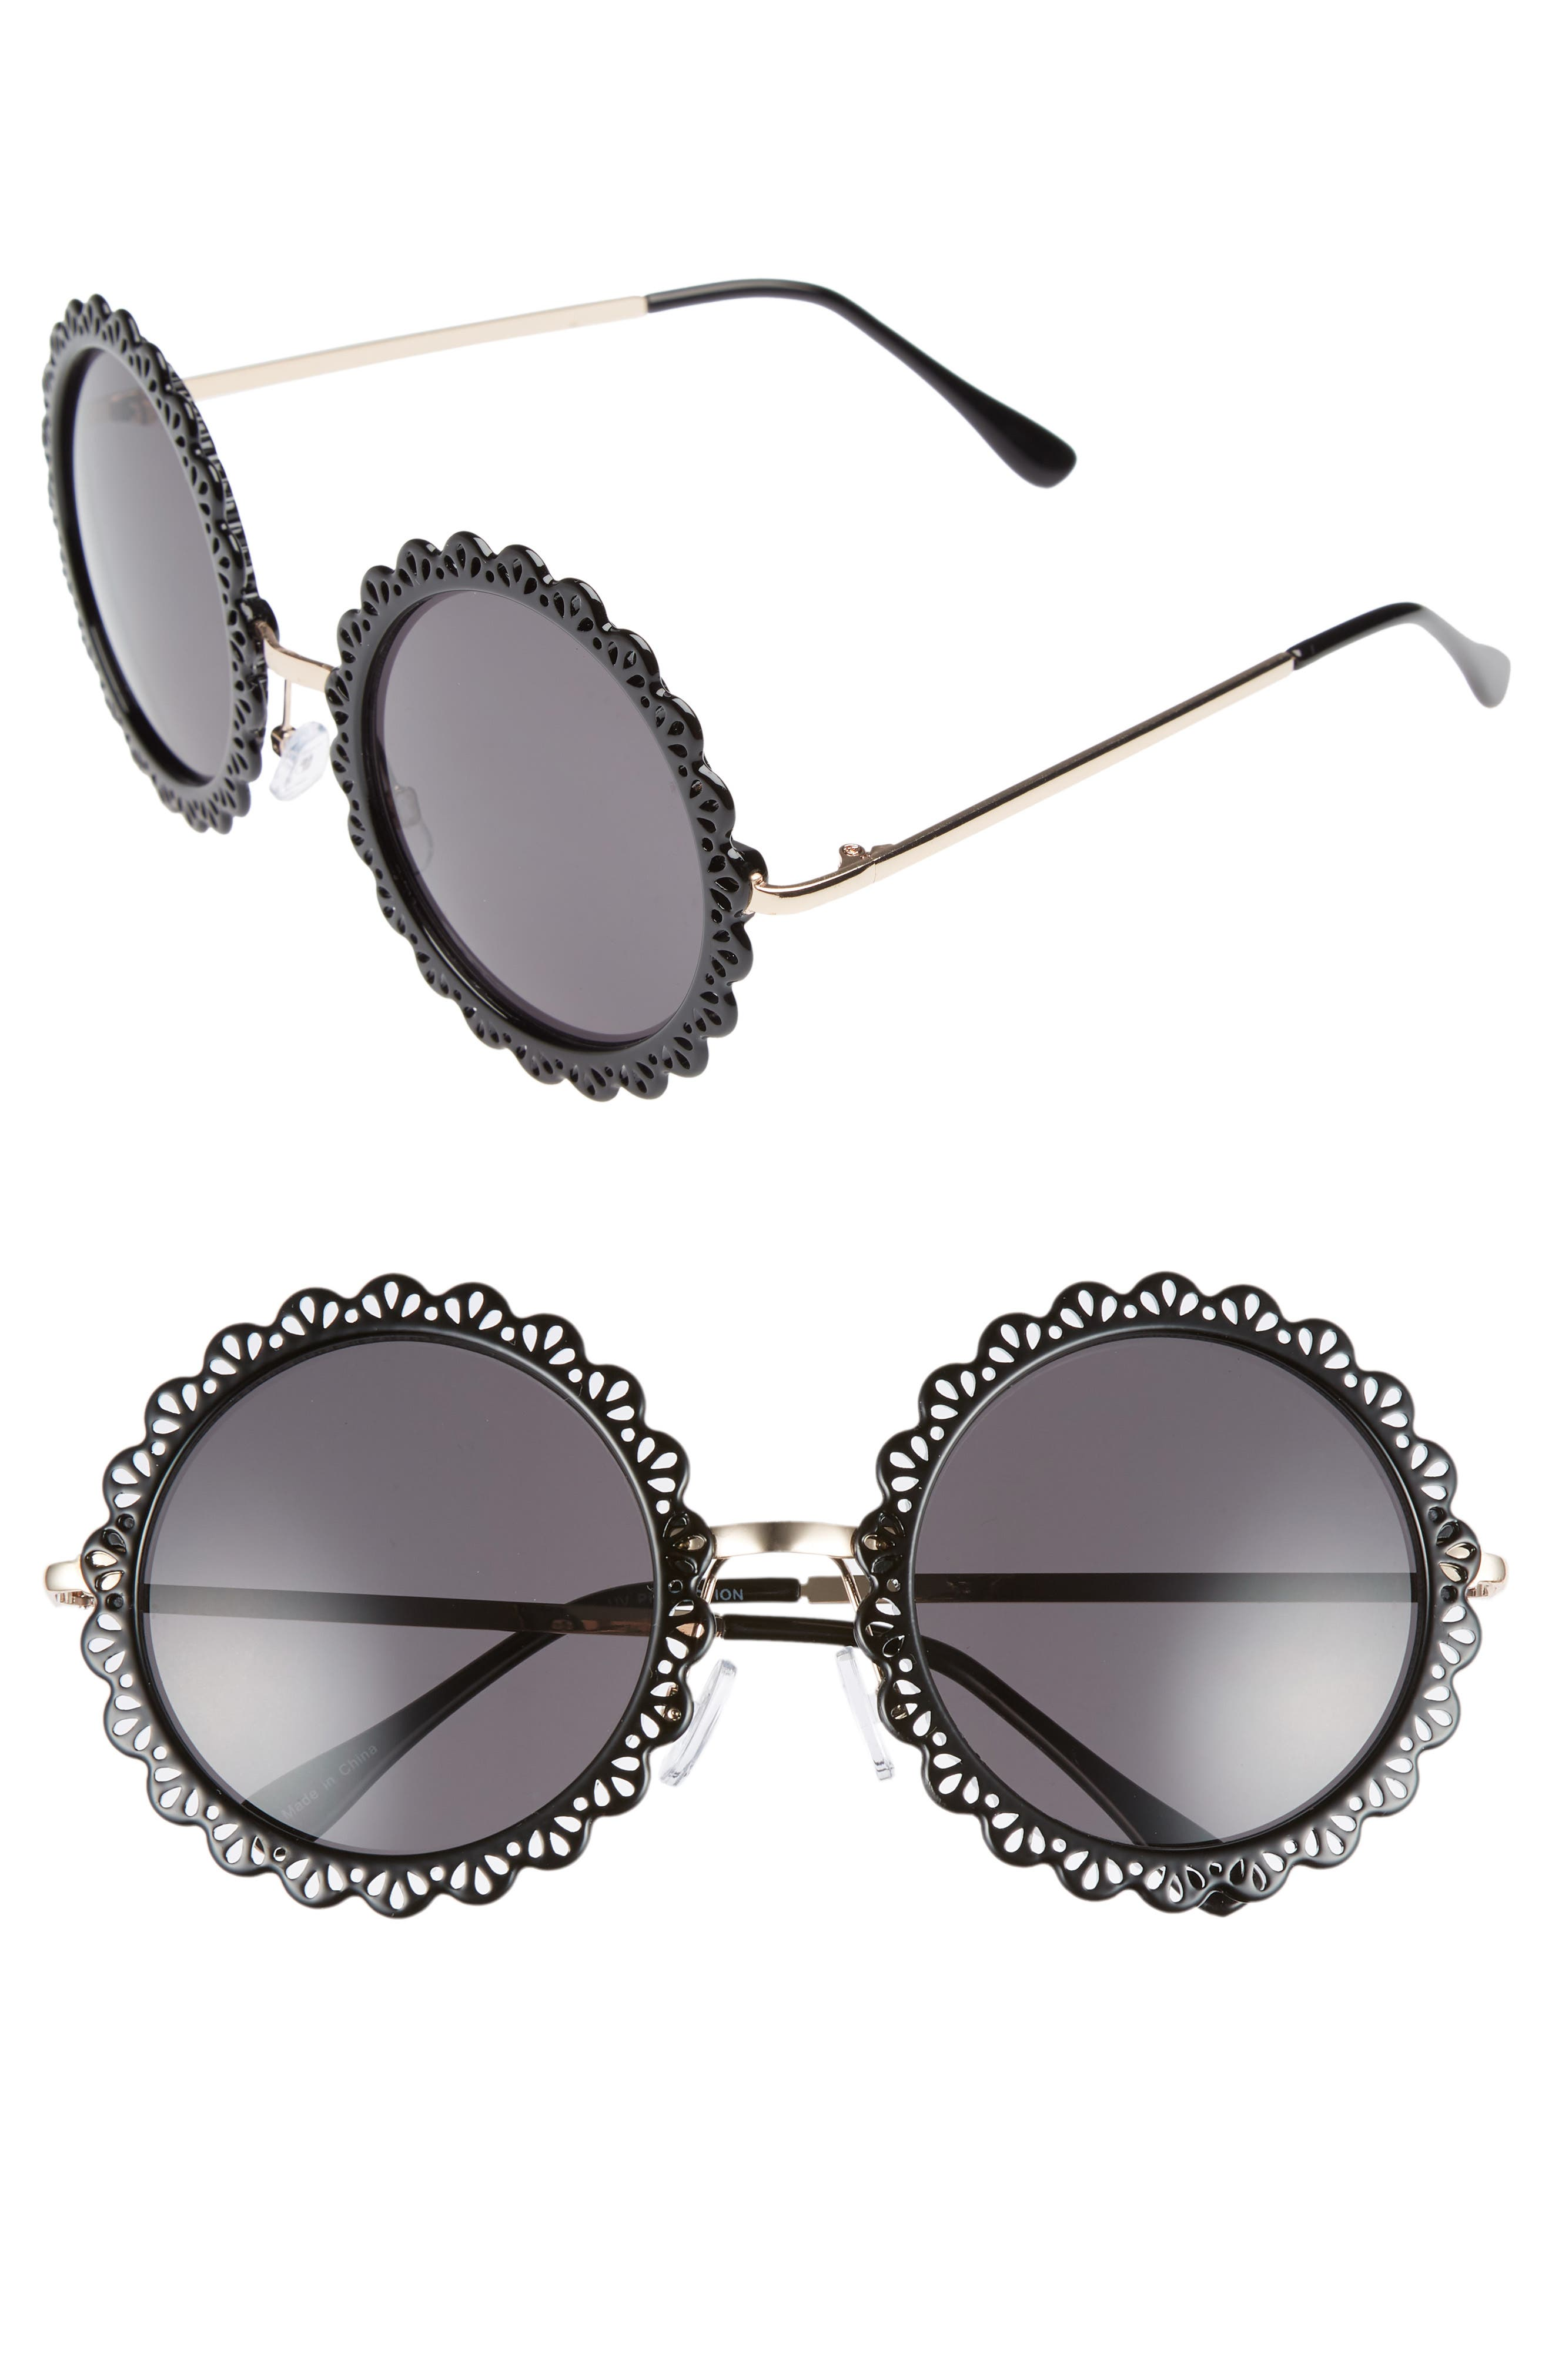 54mm Lace Detail Round Sunglasses,                         Main,                         color, 001